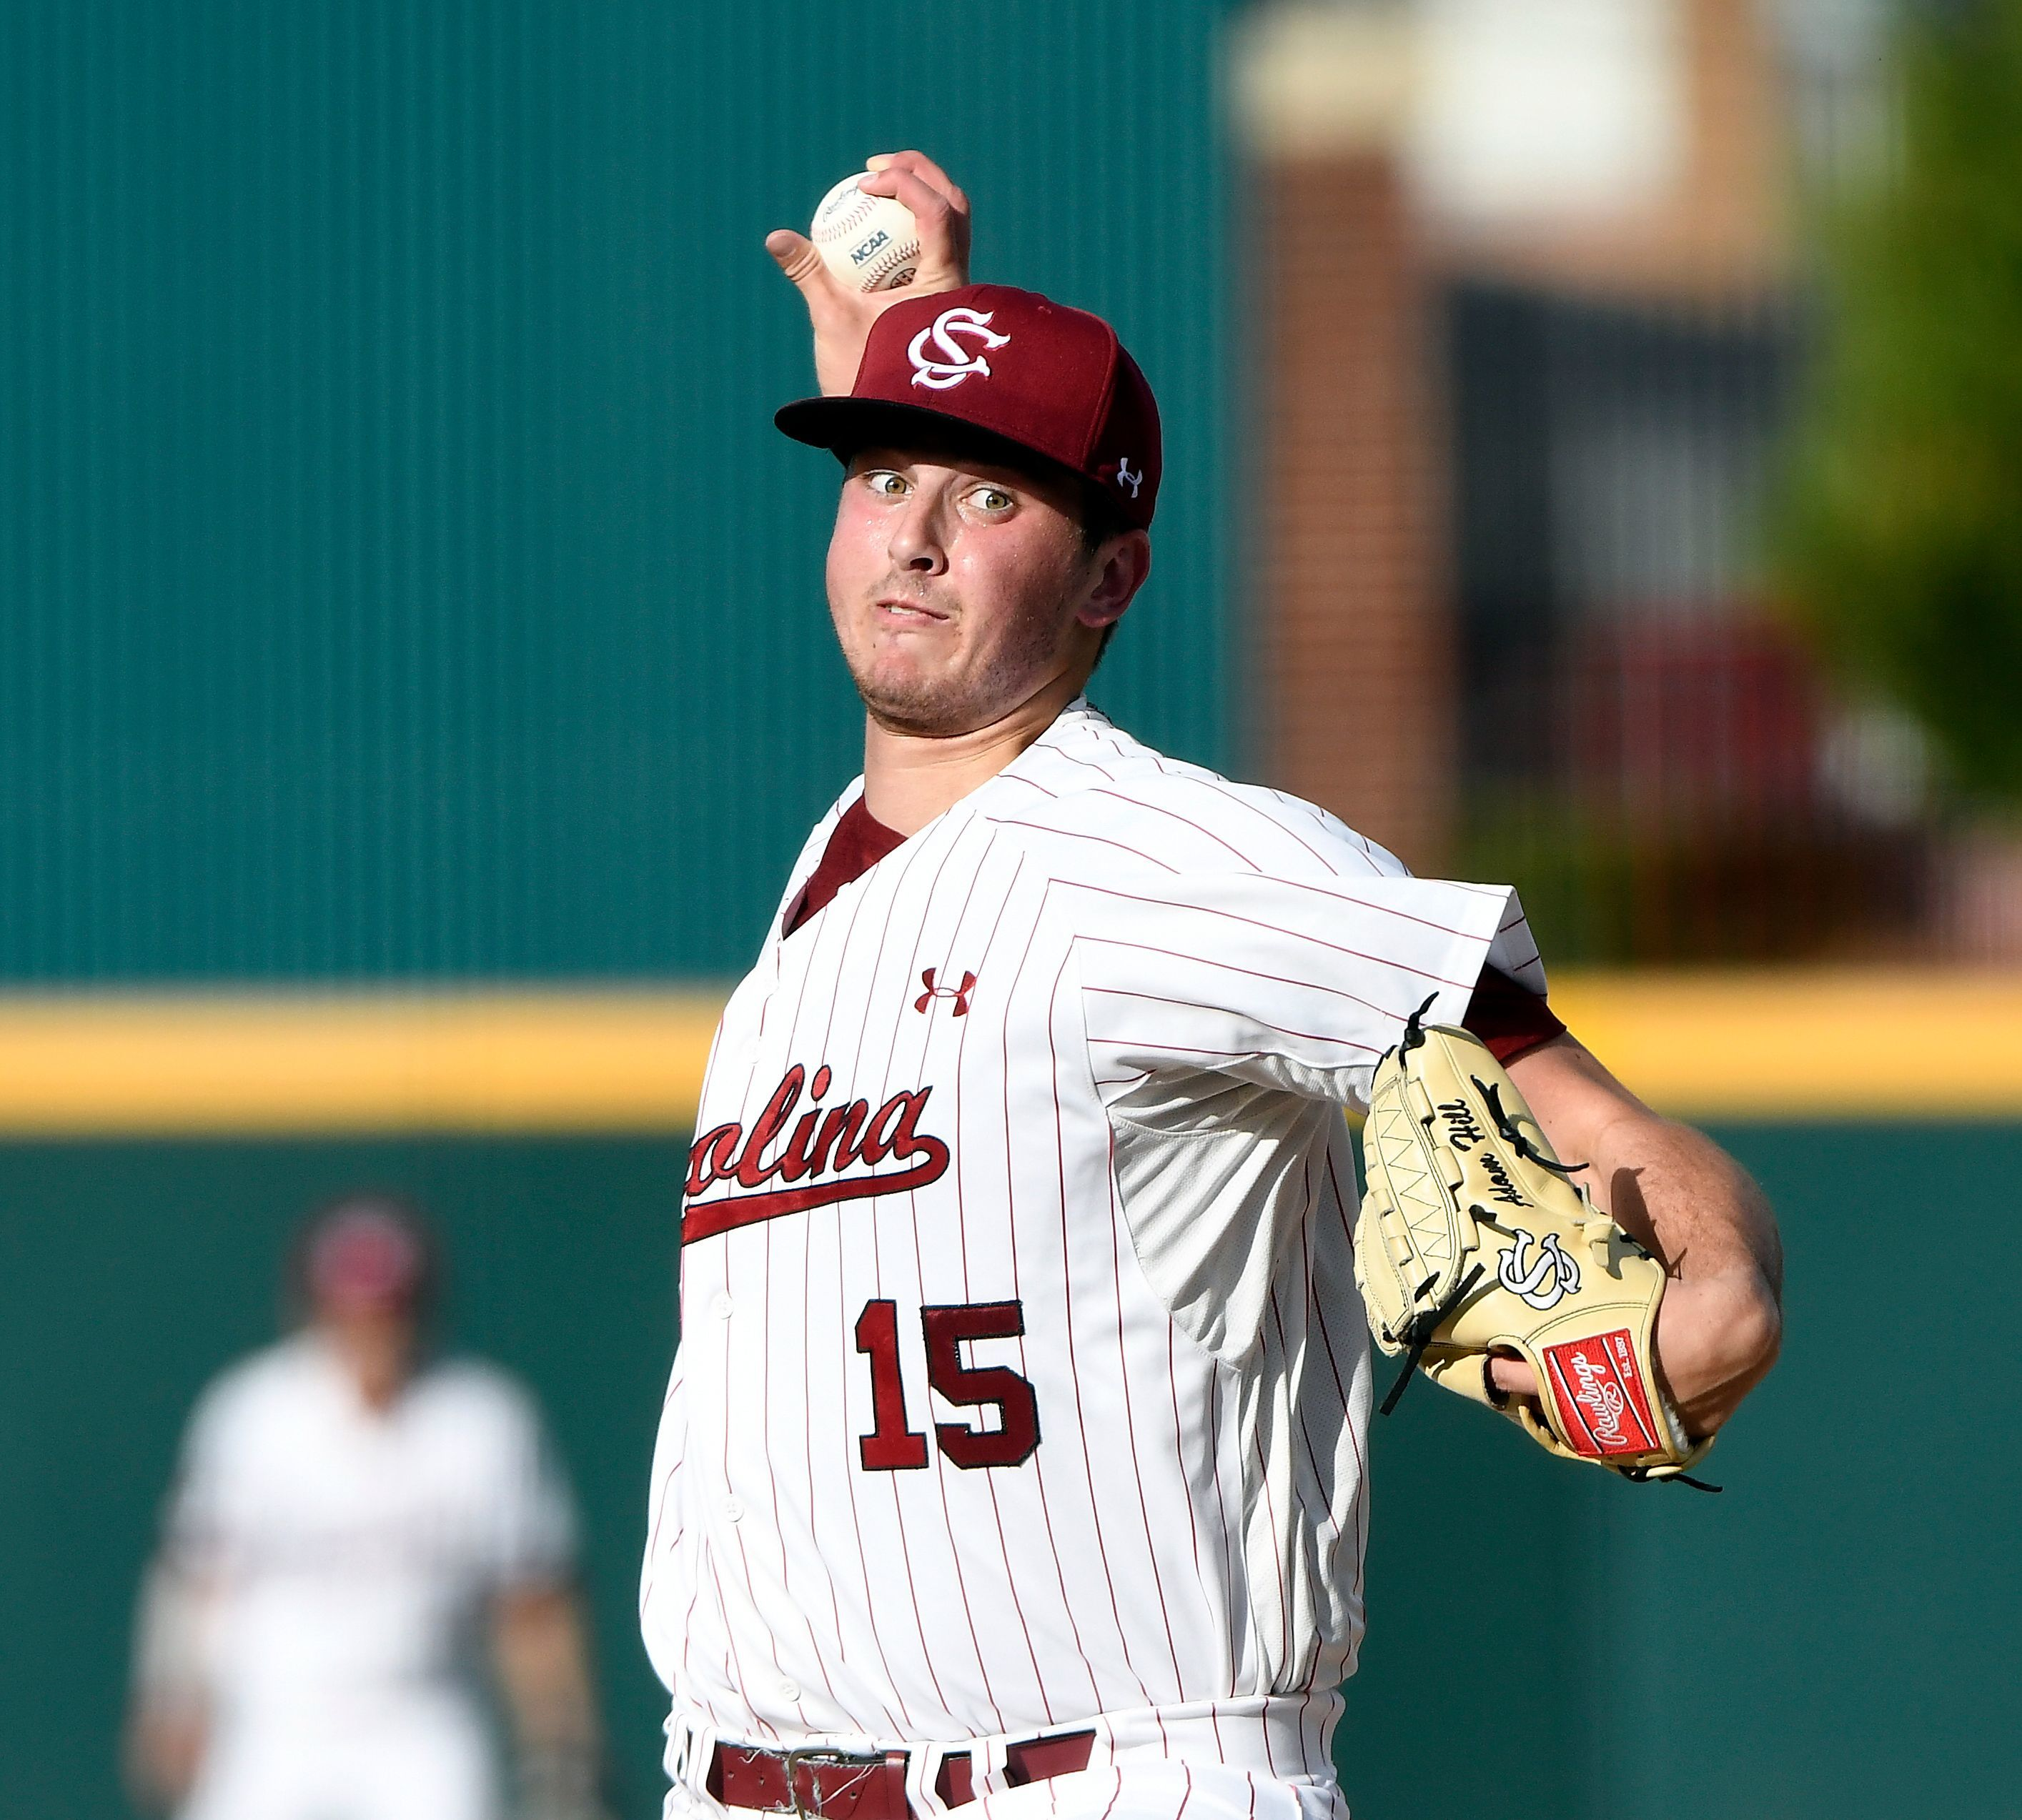 Adam Hill, the ace of the South Carolina pitching staff in college, will make his debut in the Milwaukee Brewers organization with the Timber Rattlers after an offseason trade.